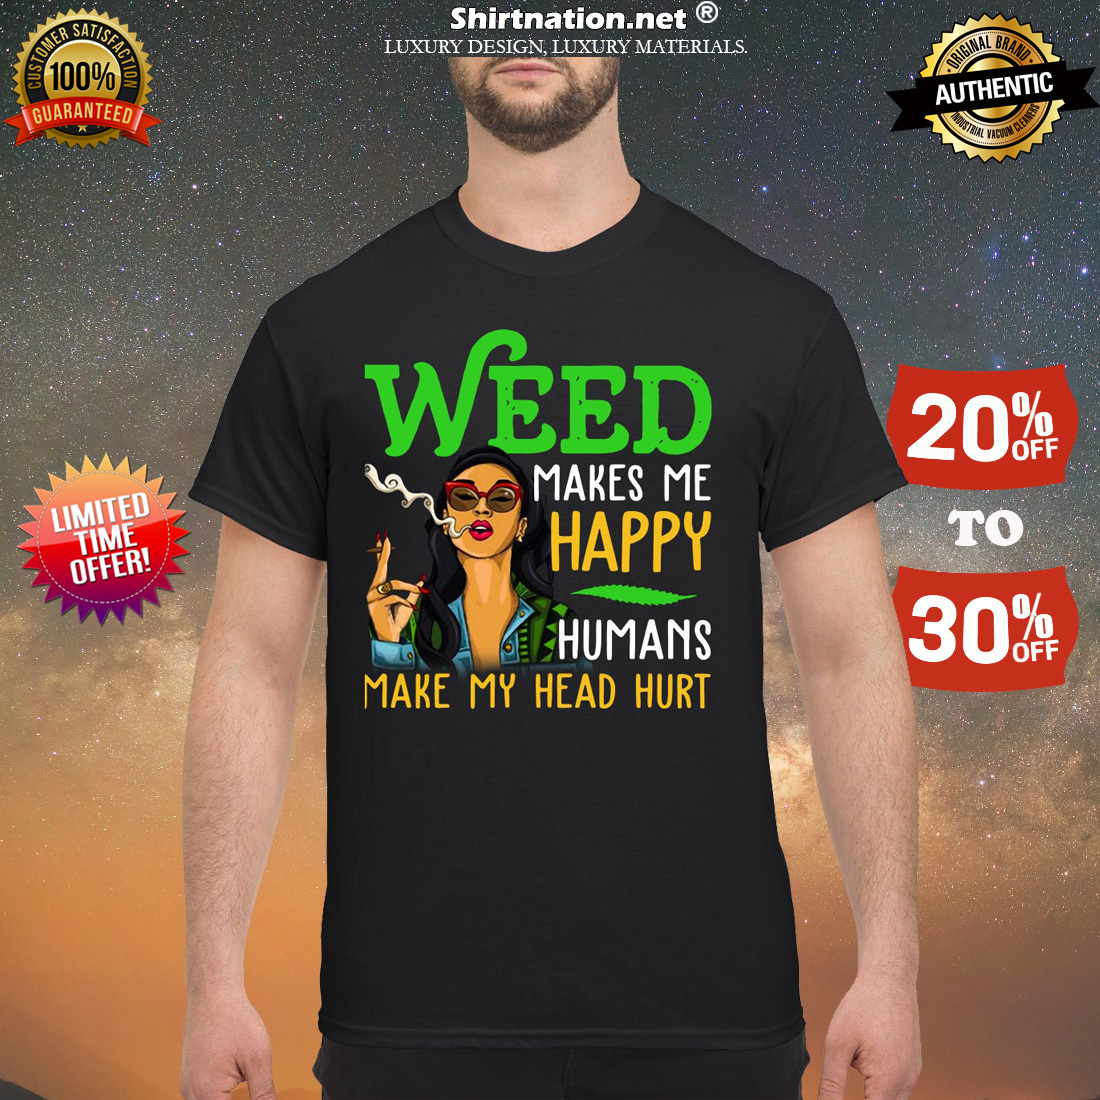 Weed makes me happy humans make my head hurt classic shirt